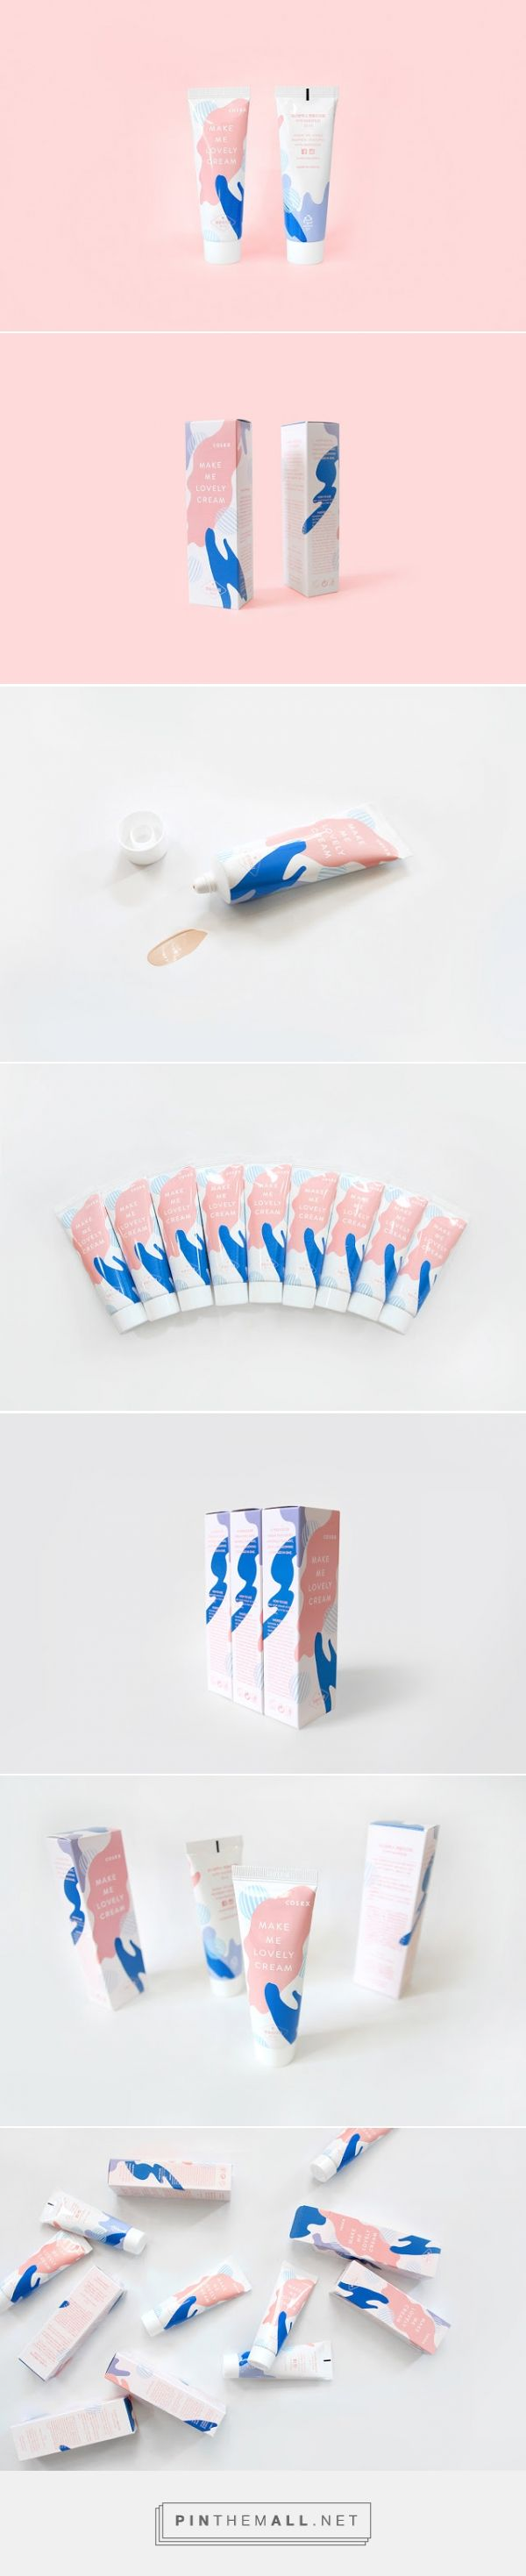 Make Me Lovely Cream packaging designed by Triangle Studio - http://www.packagingoftheworld.com/2015/09/make-me-lovely-cream.html